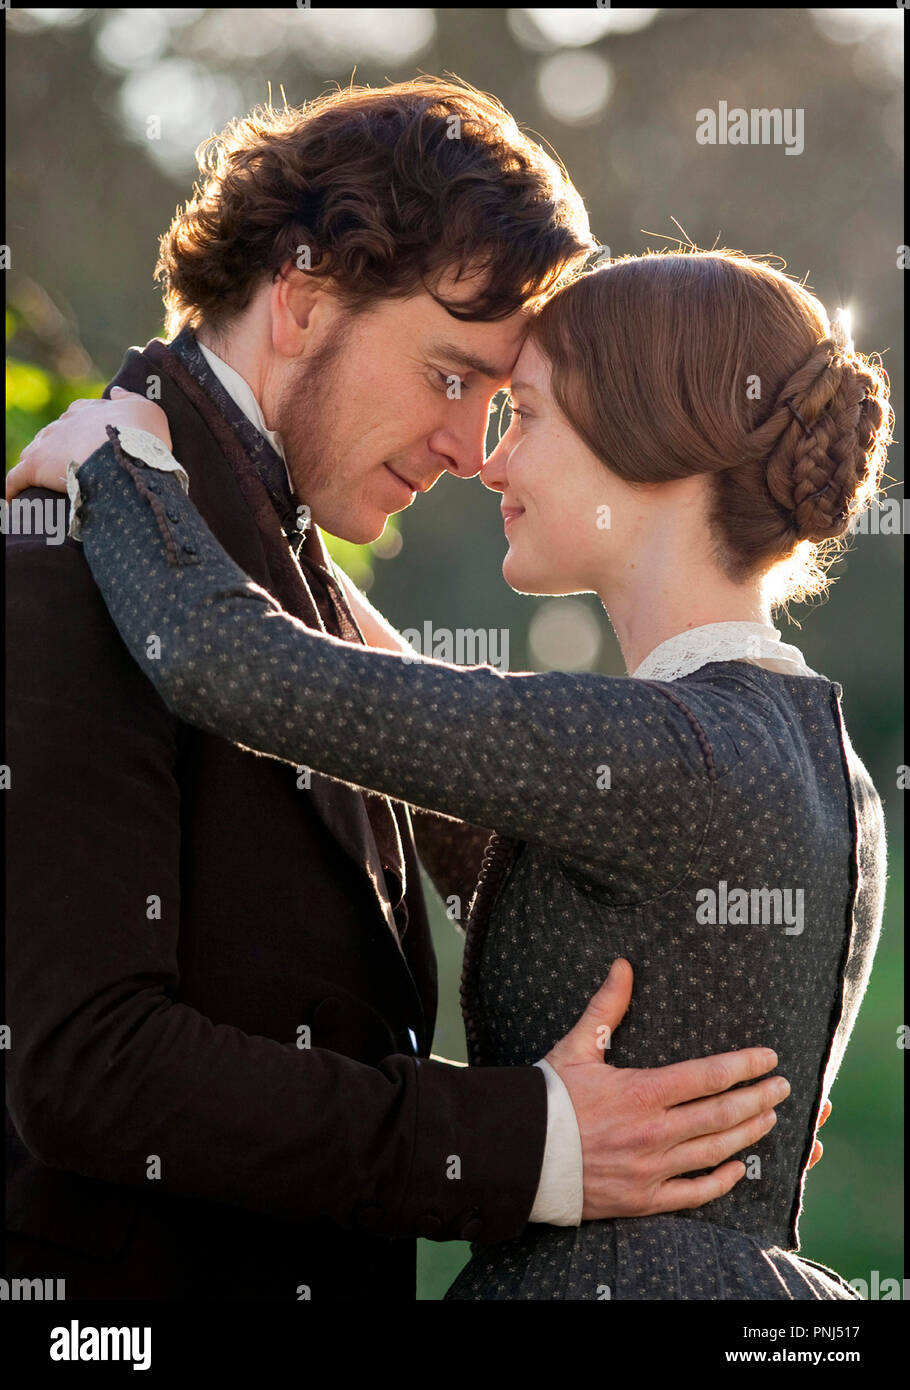 Jane eyre avec mia wasikowska dating - why is radiometric dating of sedimentary rocks rarely accurate